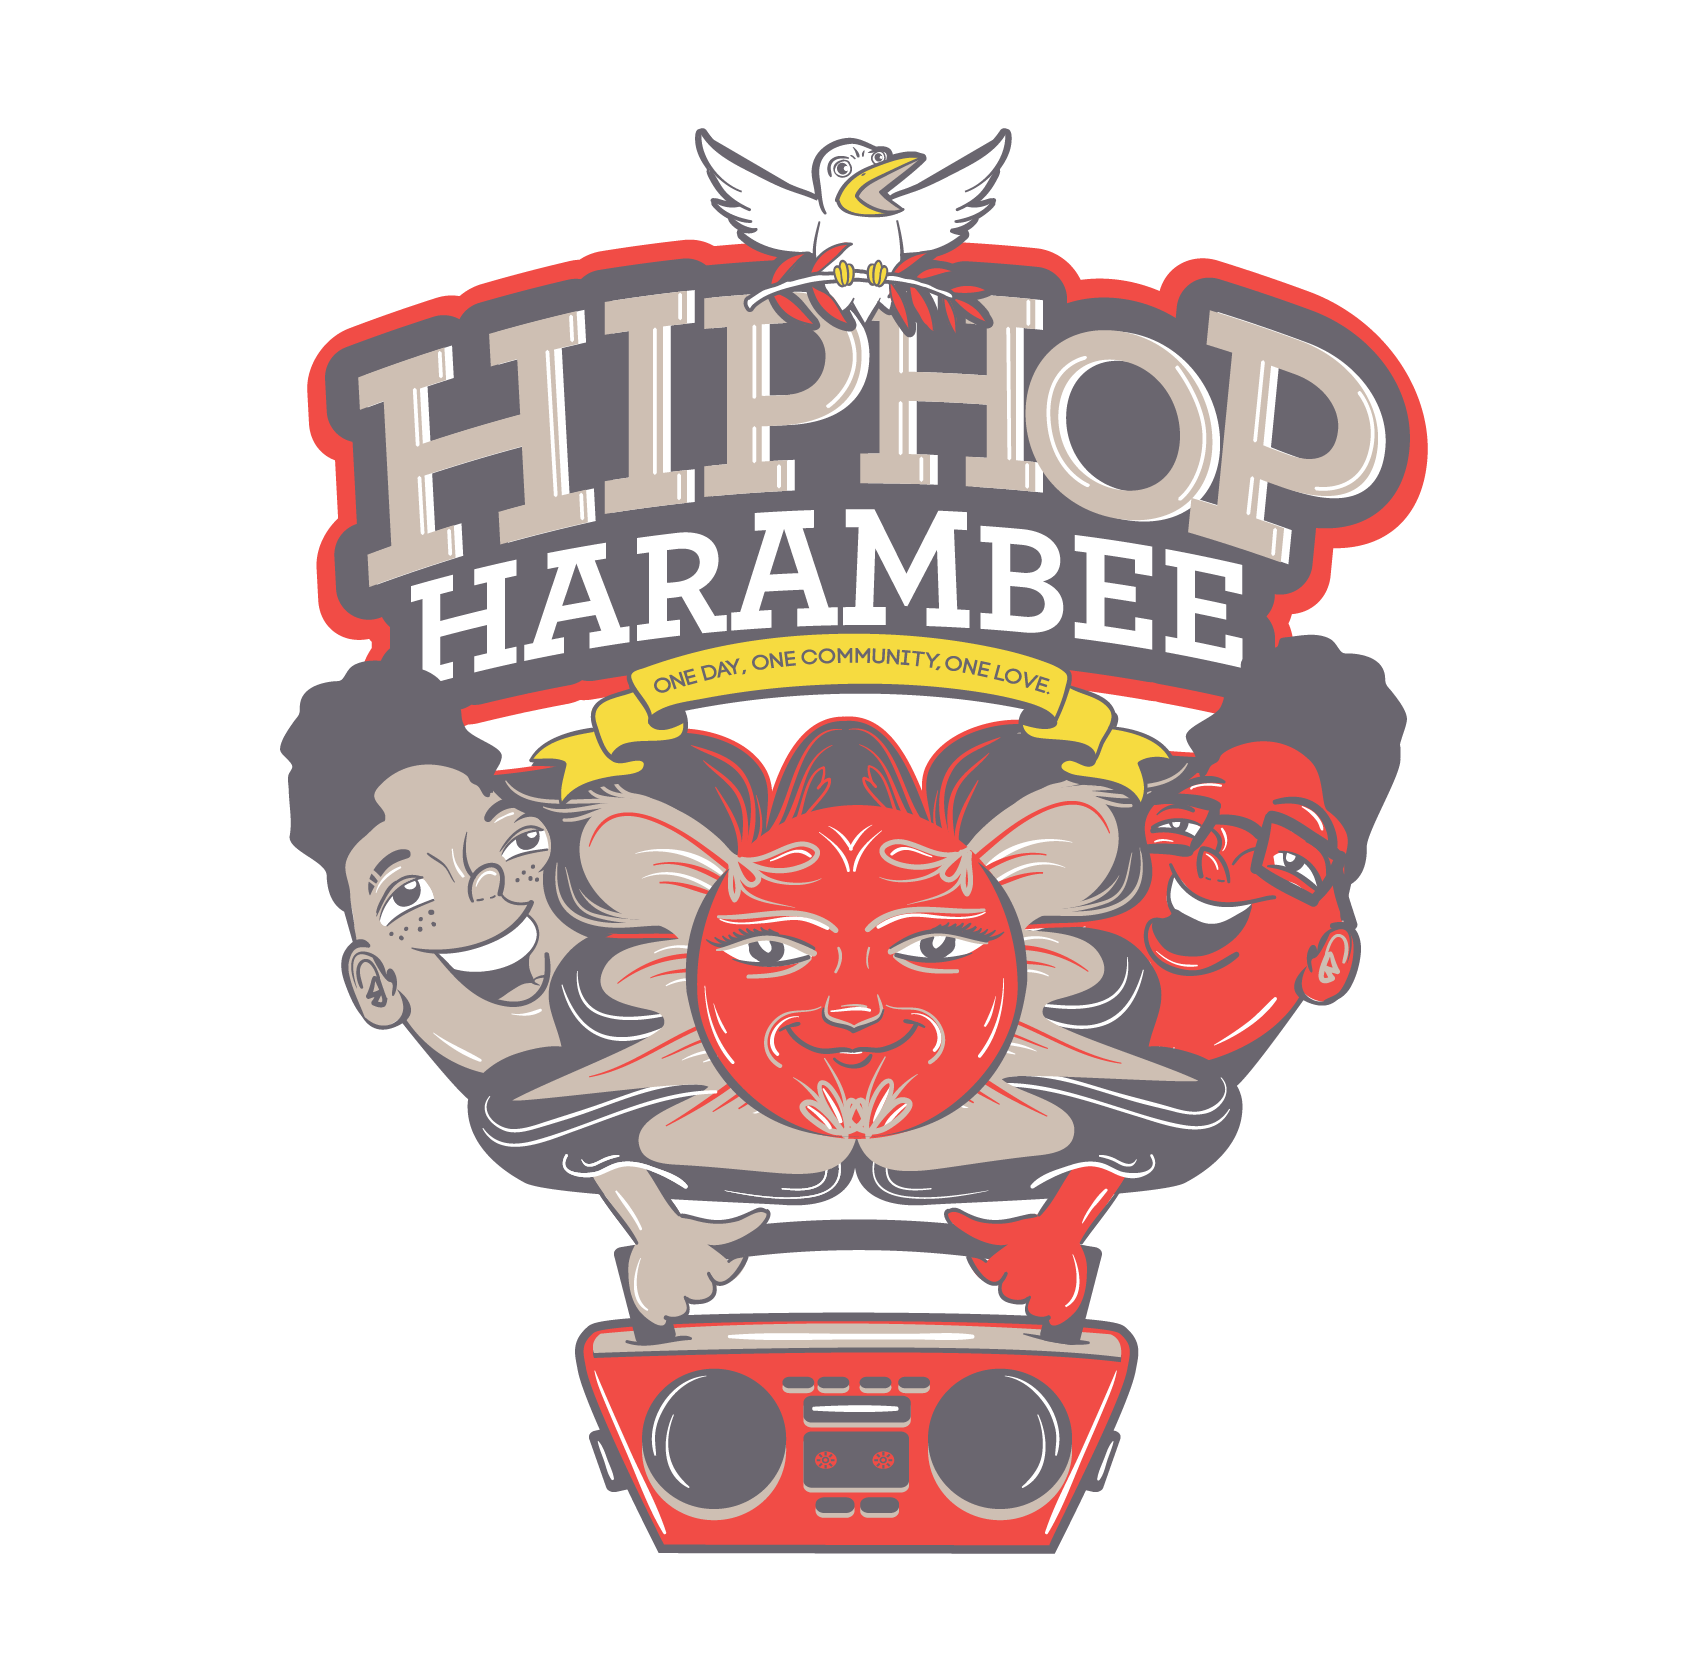 Hip-Hop Harambee is an outdoor, urban arts block party, taking place on the West Bank of Minneapolis (Cedar Avenue). This annual event will take place during the second weekend of September.